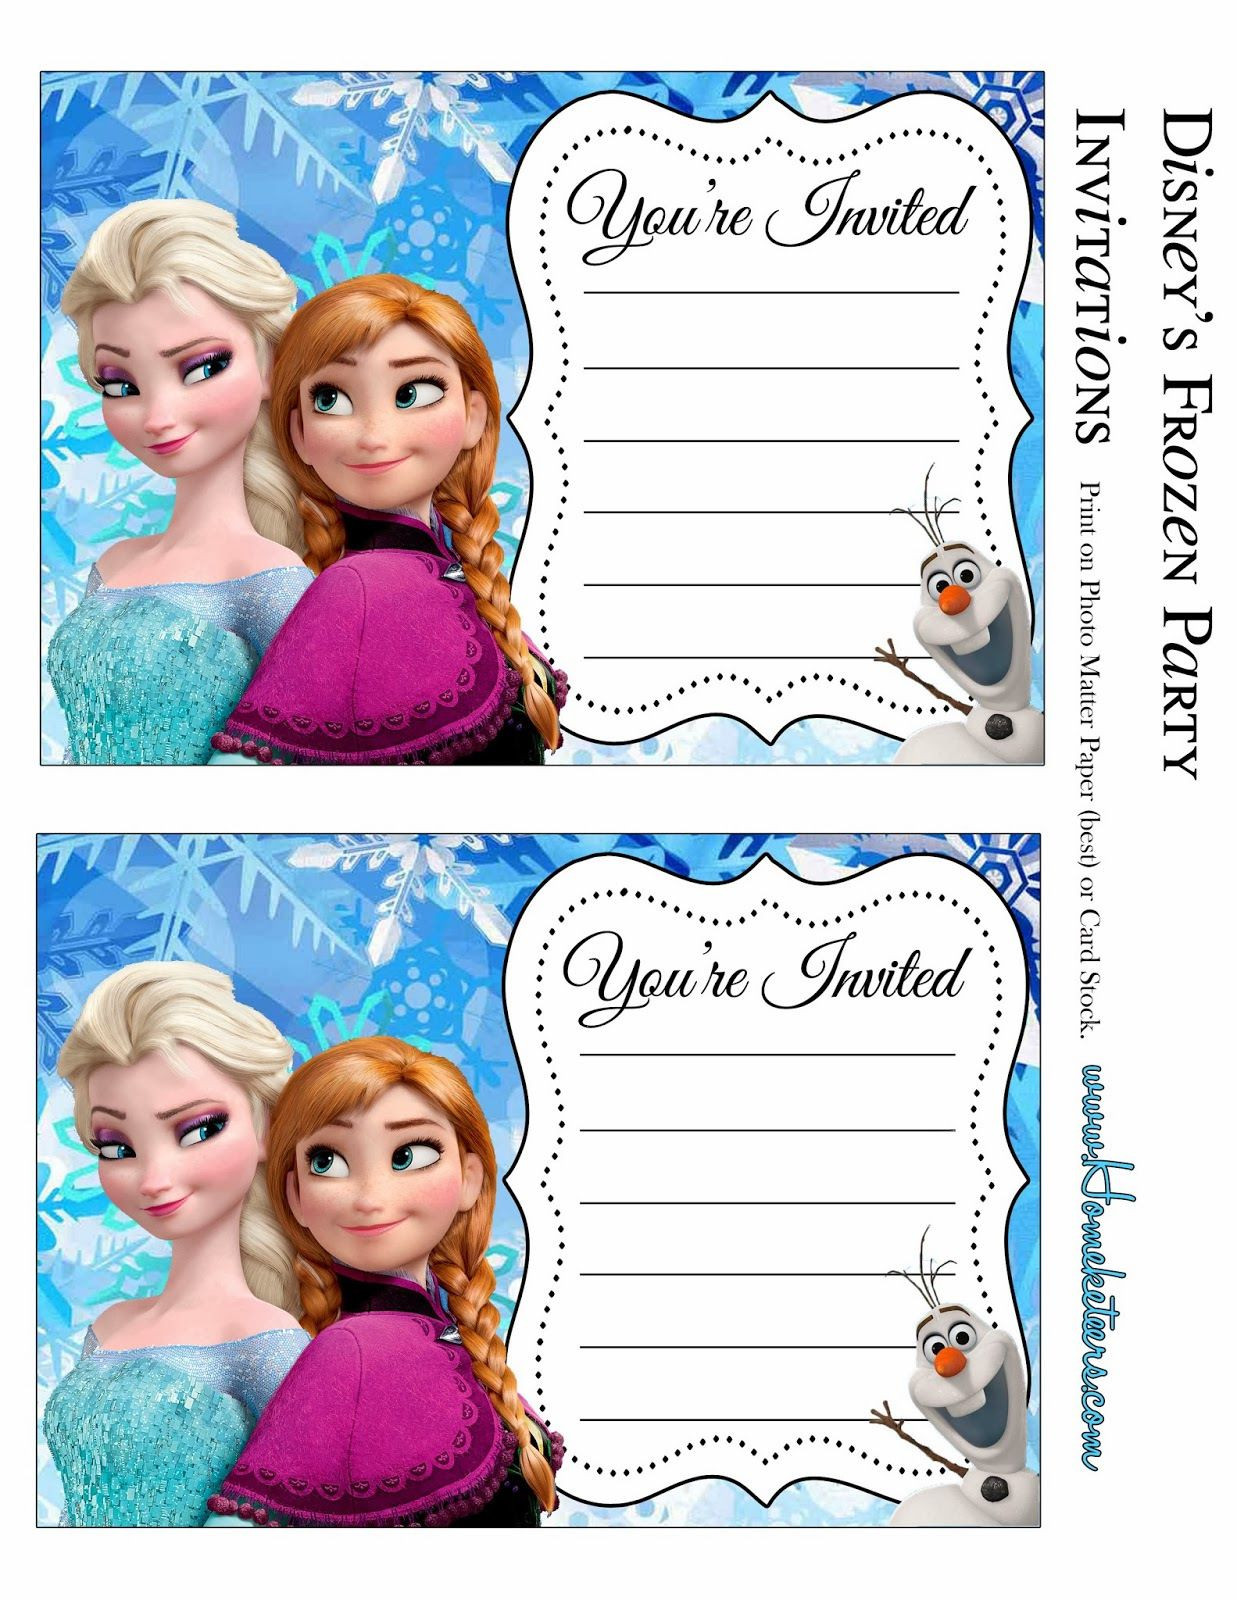 Frozen Printable Birthday Invitations Free Printables for the Disney Movie Frozen